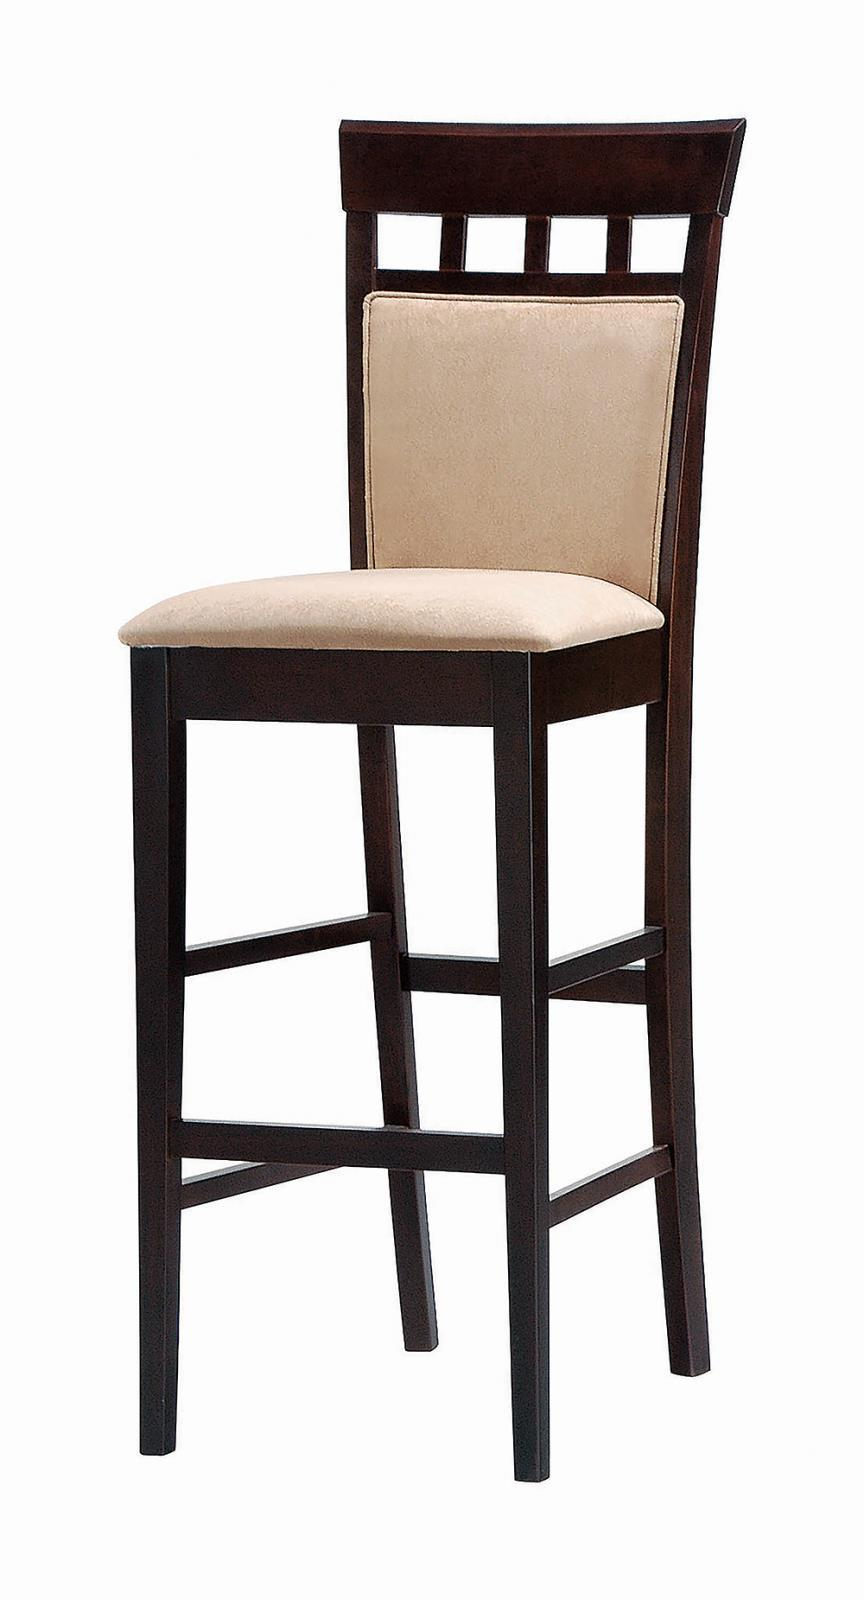 Gabriel Collection - Tan - Upholstered Bar Stools Cappuccino And Tan (Set of 2)